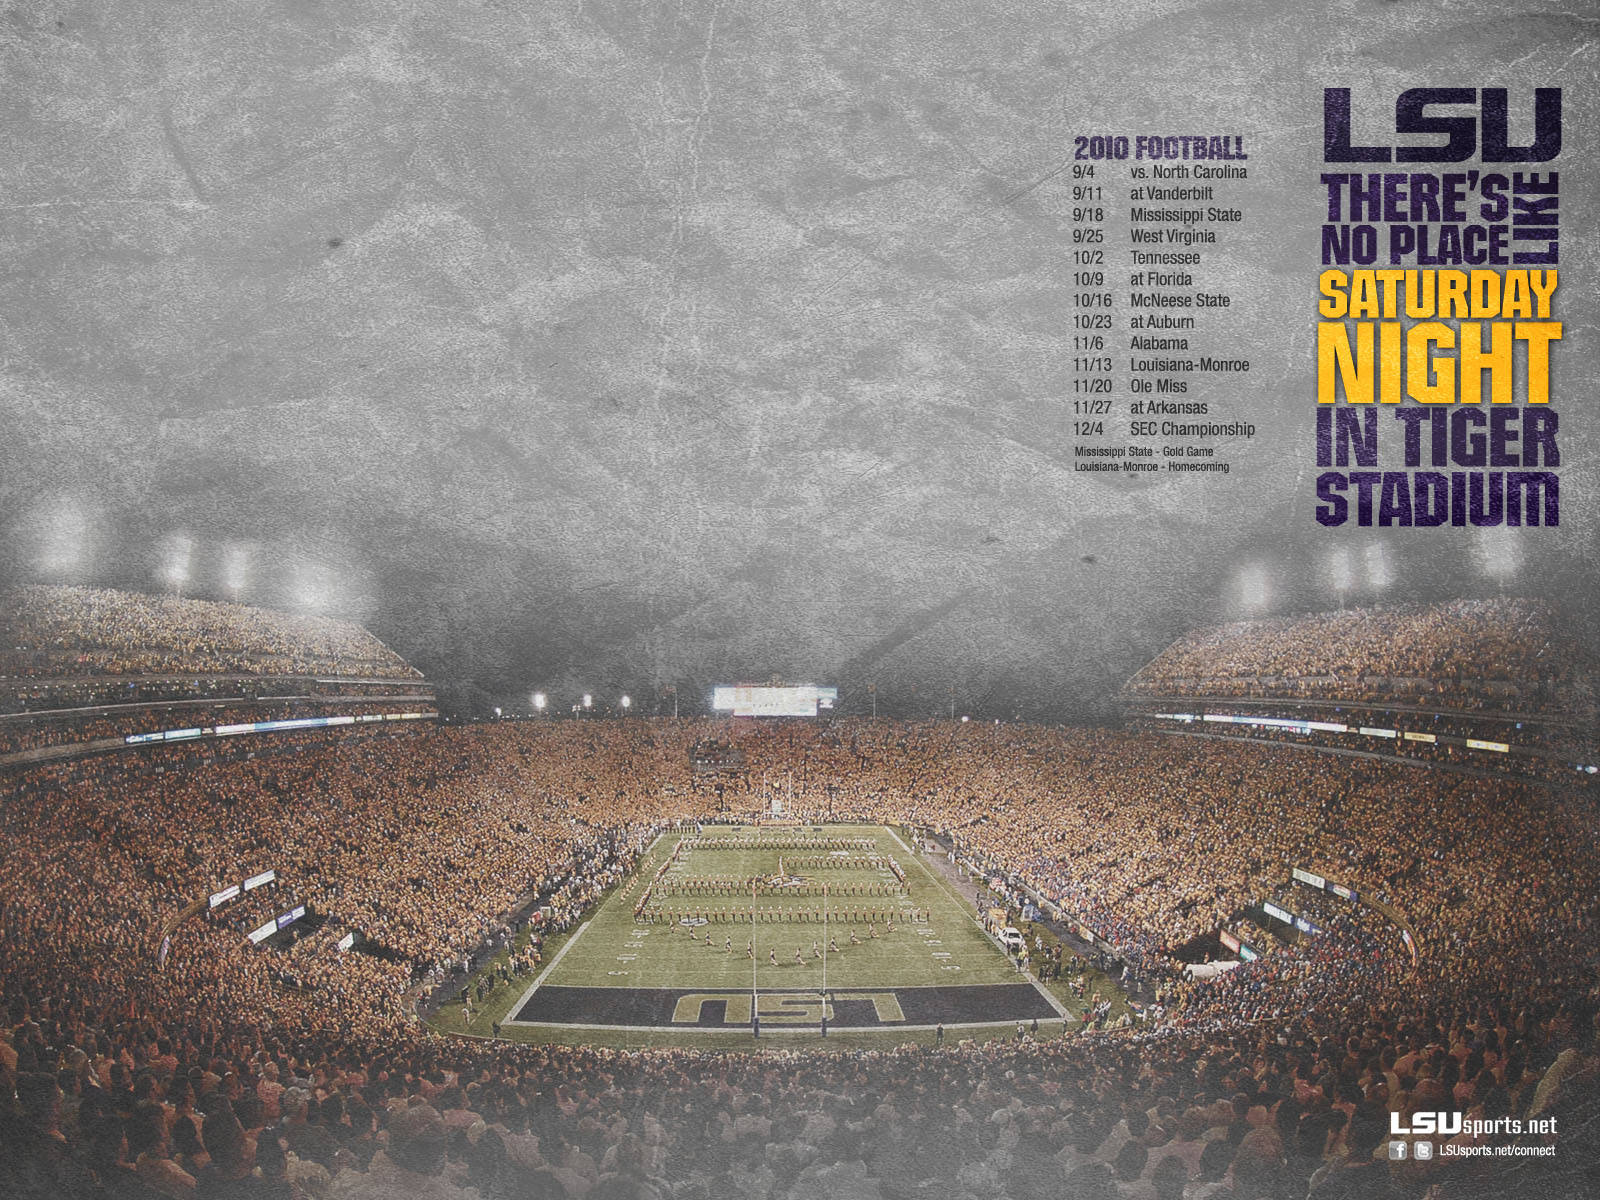 50+] LSU Tiger Stadium Wallpaper on